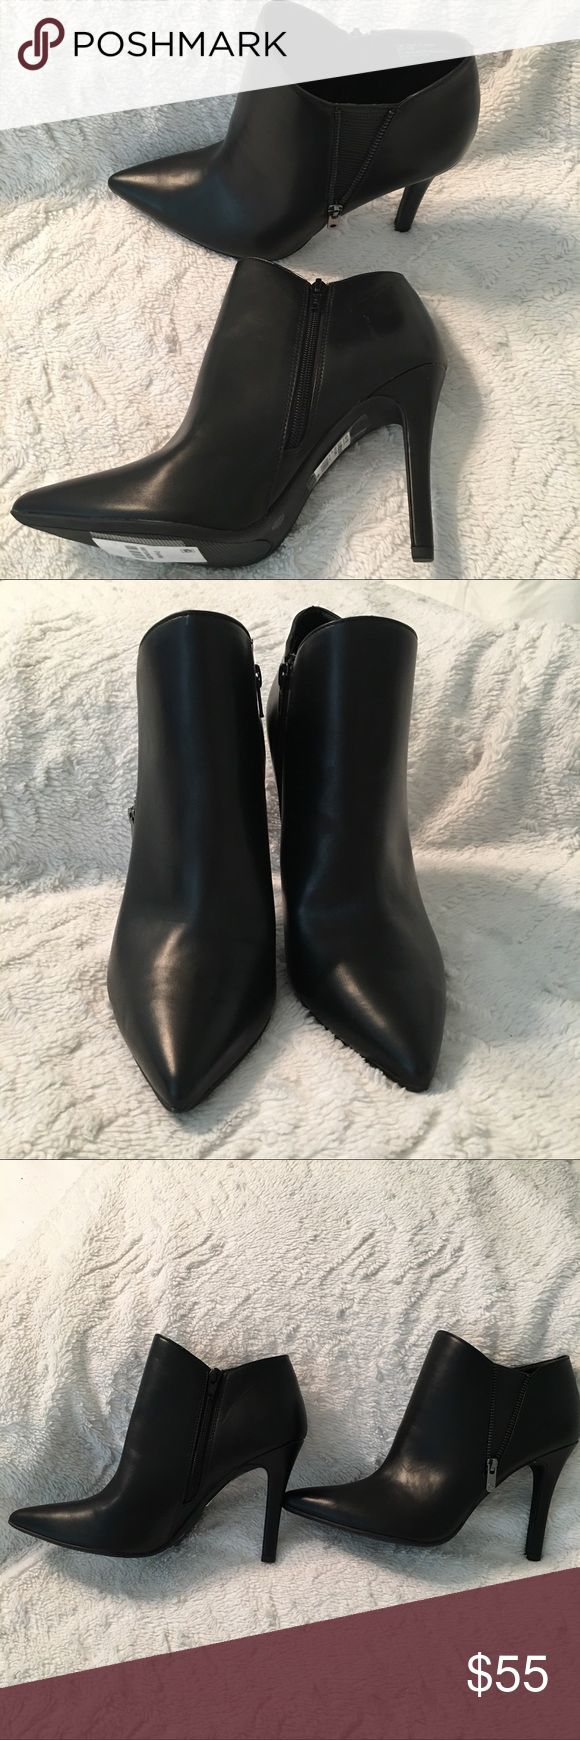 "Worthington Black Ankle Boots 10 M NWOB Item: Women's Ankle Boots with Zipper Fastening  Label:  Worthington Condition:  Brand new without box. Floor Demo. Size:  10 Width: Medium Heel: 3-1/4"" Color: Black Material:  Synthetic  Retail: $80  Good to Know:  Brand new without box. Floor Demo. May have been worn in store. Shoe Heel Height: High Boot Shaft Height: Low Sole Outer Surf Area: 100% Thermoplastic-Rubber Toe Type: Pointed Toe Worthington Shoes Ankle Boots & Booties"